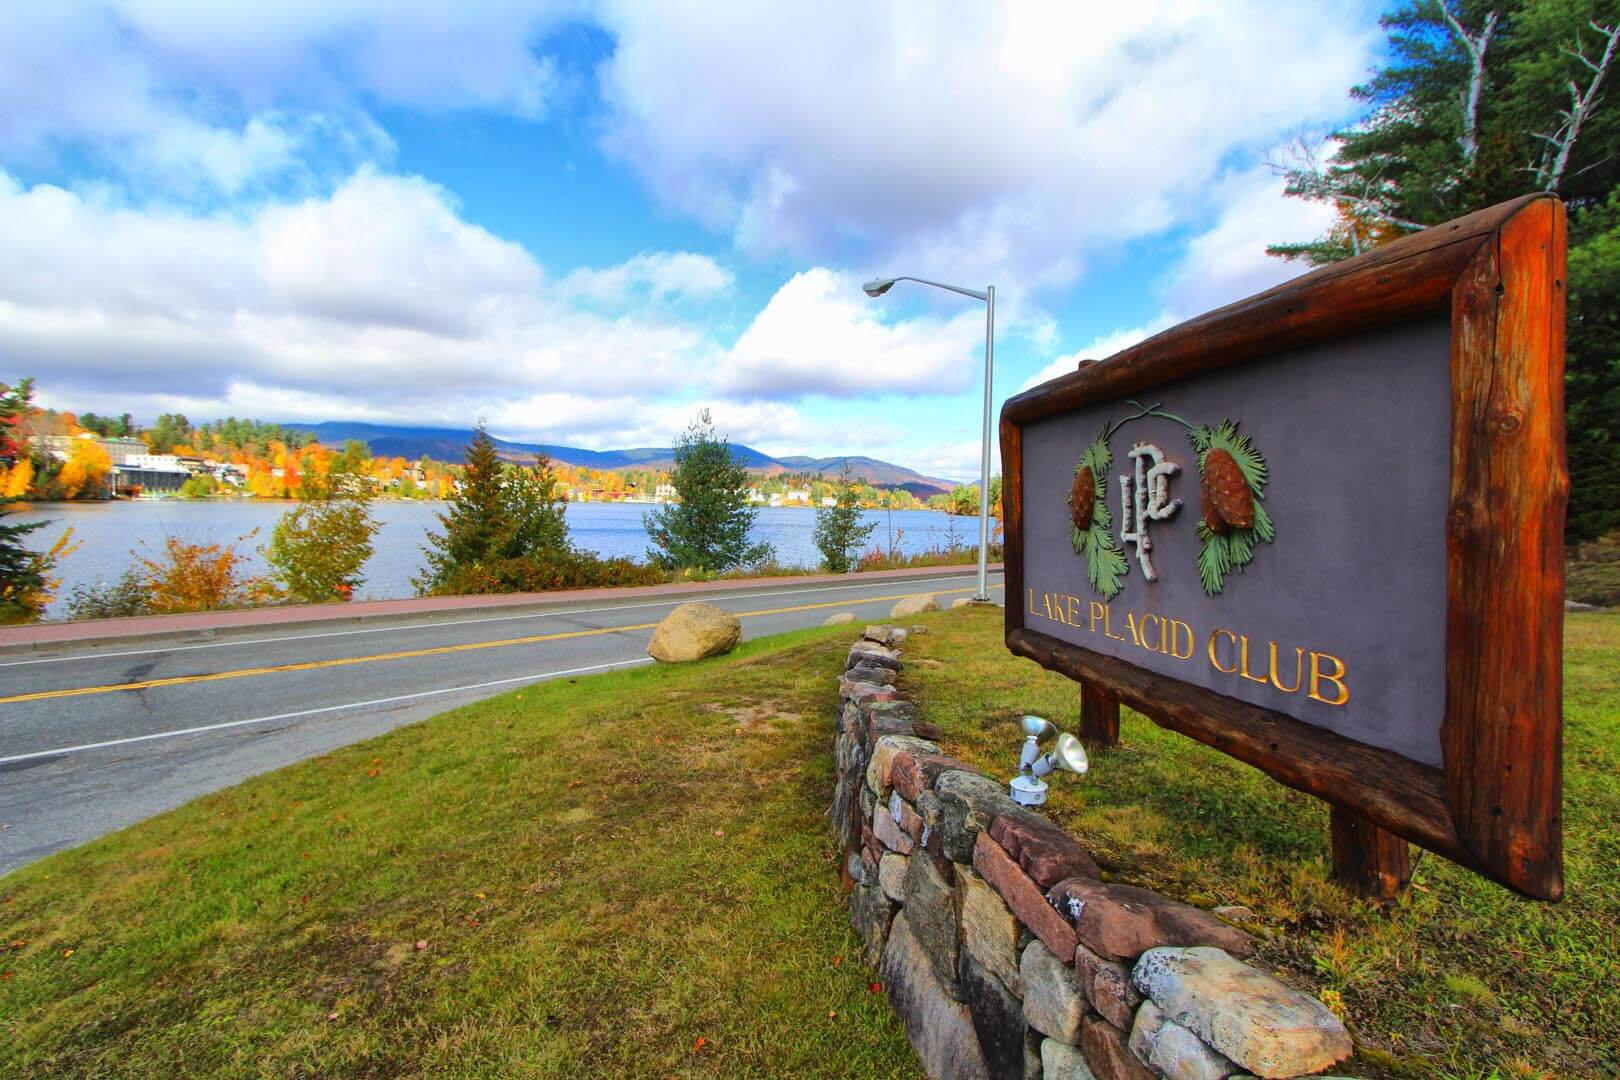 Lake Placid Club Lodges Signage